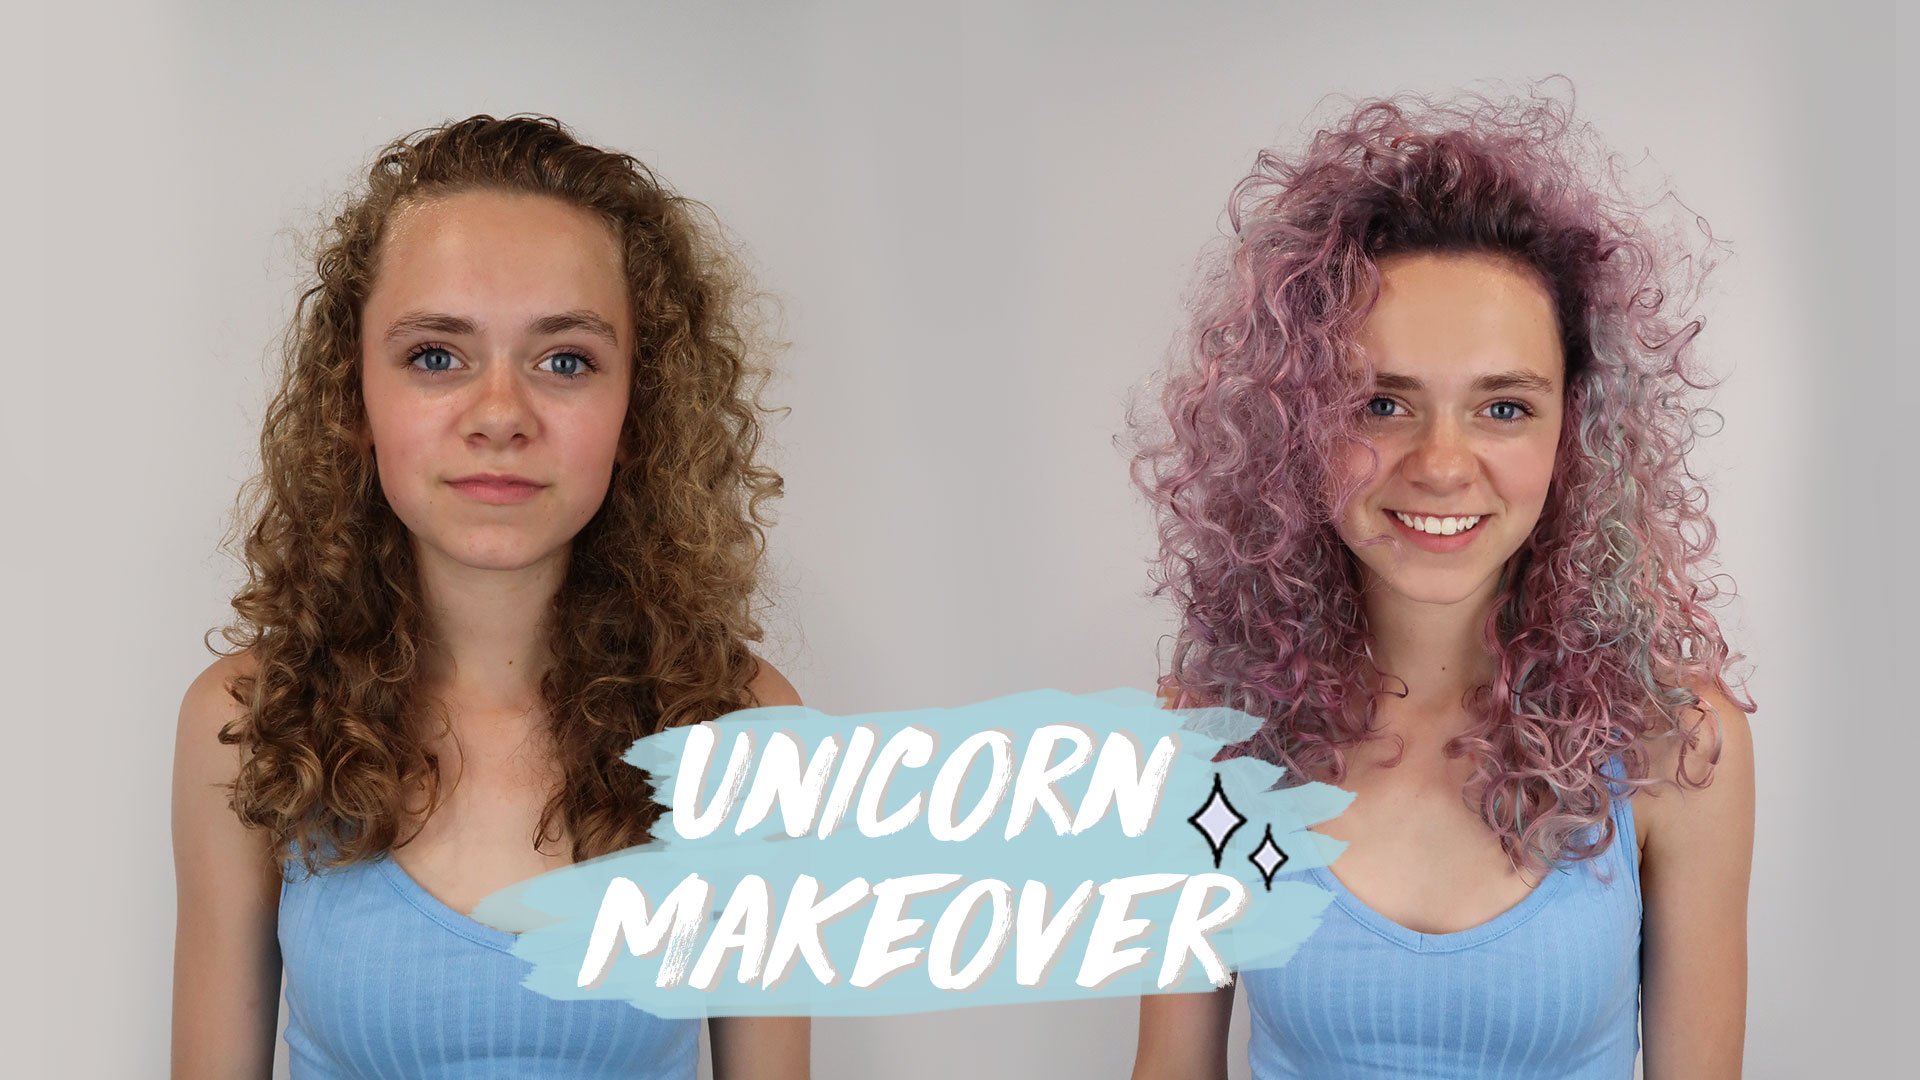 Make-over Marije Stoelhorst